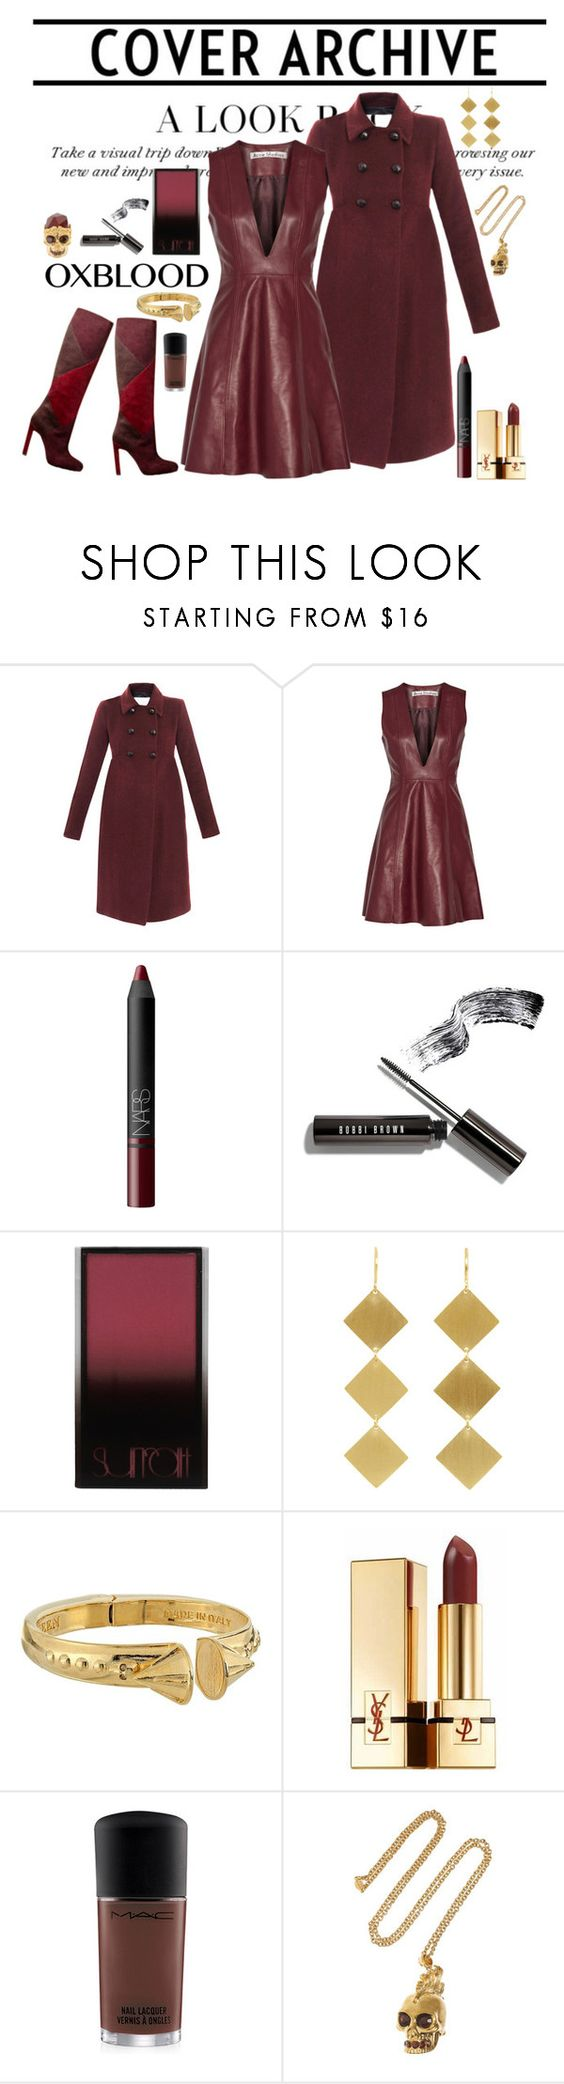 """""""Leather and suede - oxblood"""" by riquee ❤ liked on Polyvore featuring Opening Ceremony, Acne Studios, Brian Atwood, NARS Cosmetics, Bobbi Brown Cosmetics, Surratt, Irene Neuwirth, Alexander McQueen, Yves Saint Laurent and MAC Cosmetics"""